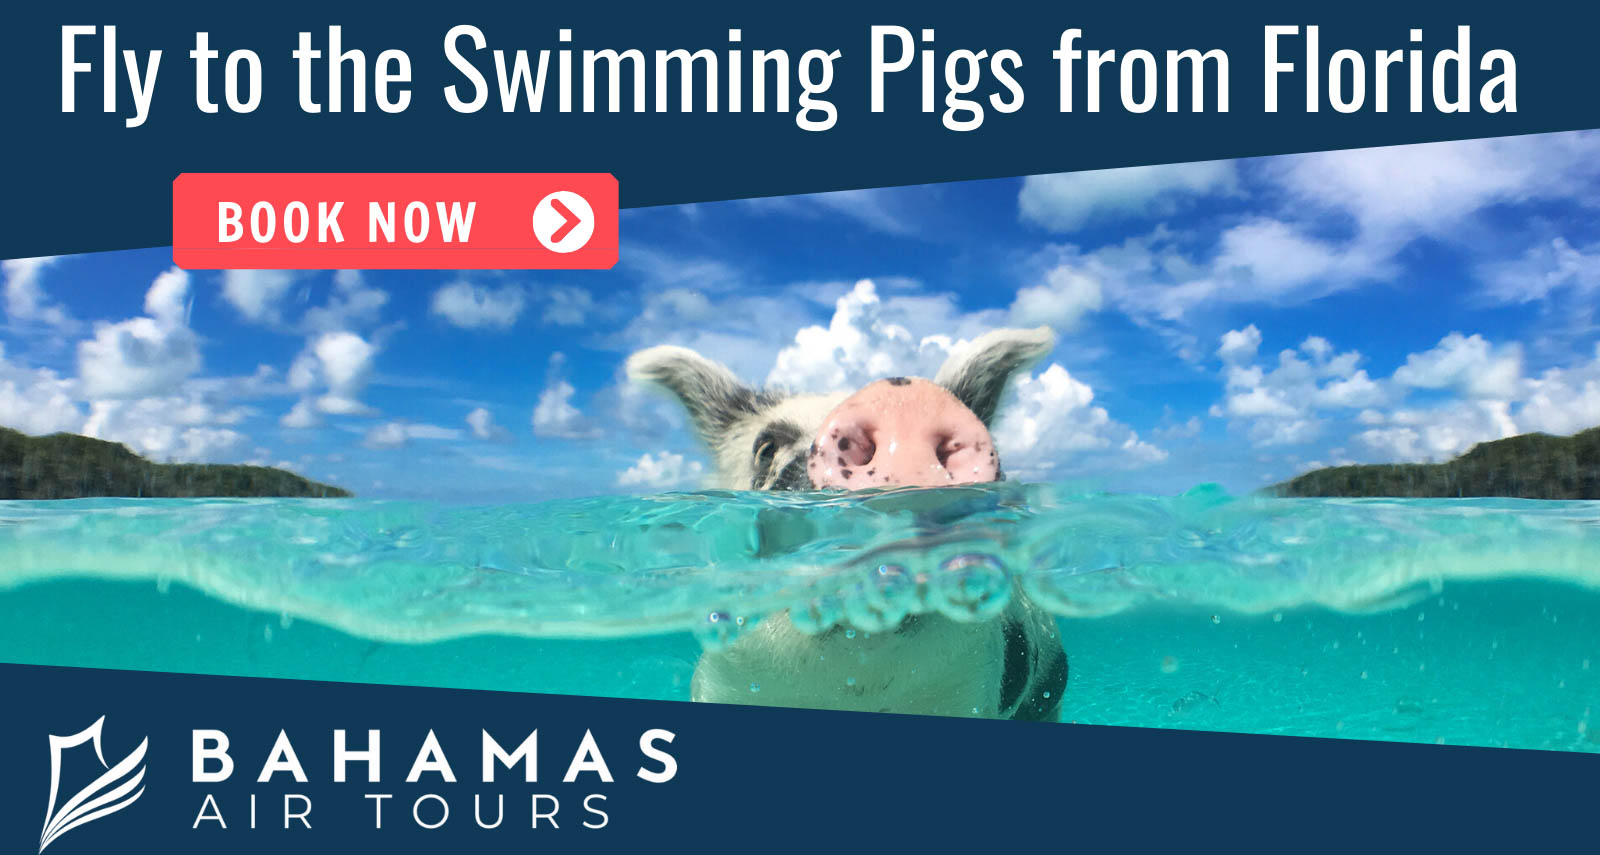 Bahamas Air Tours Swimming Pigs Tours from Florida